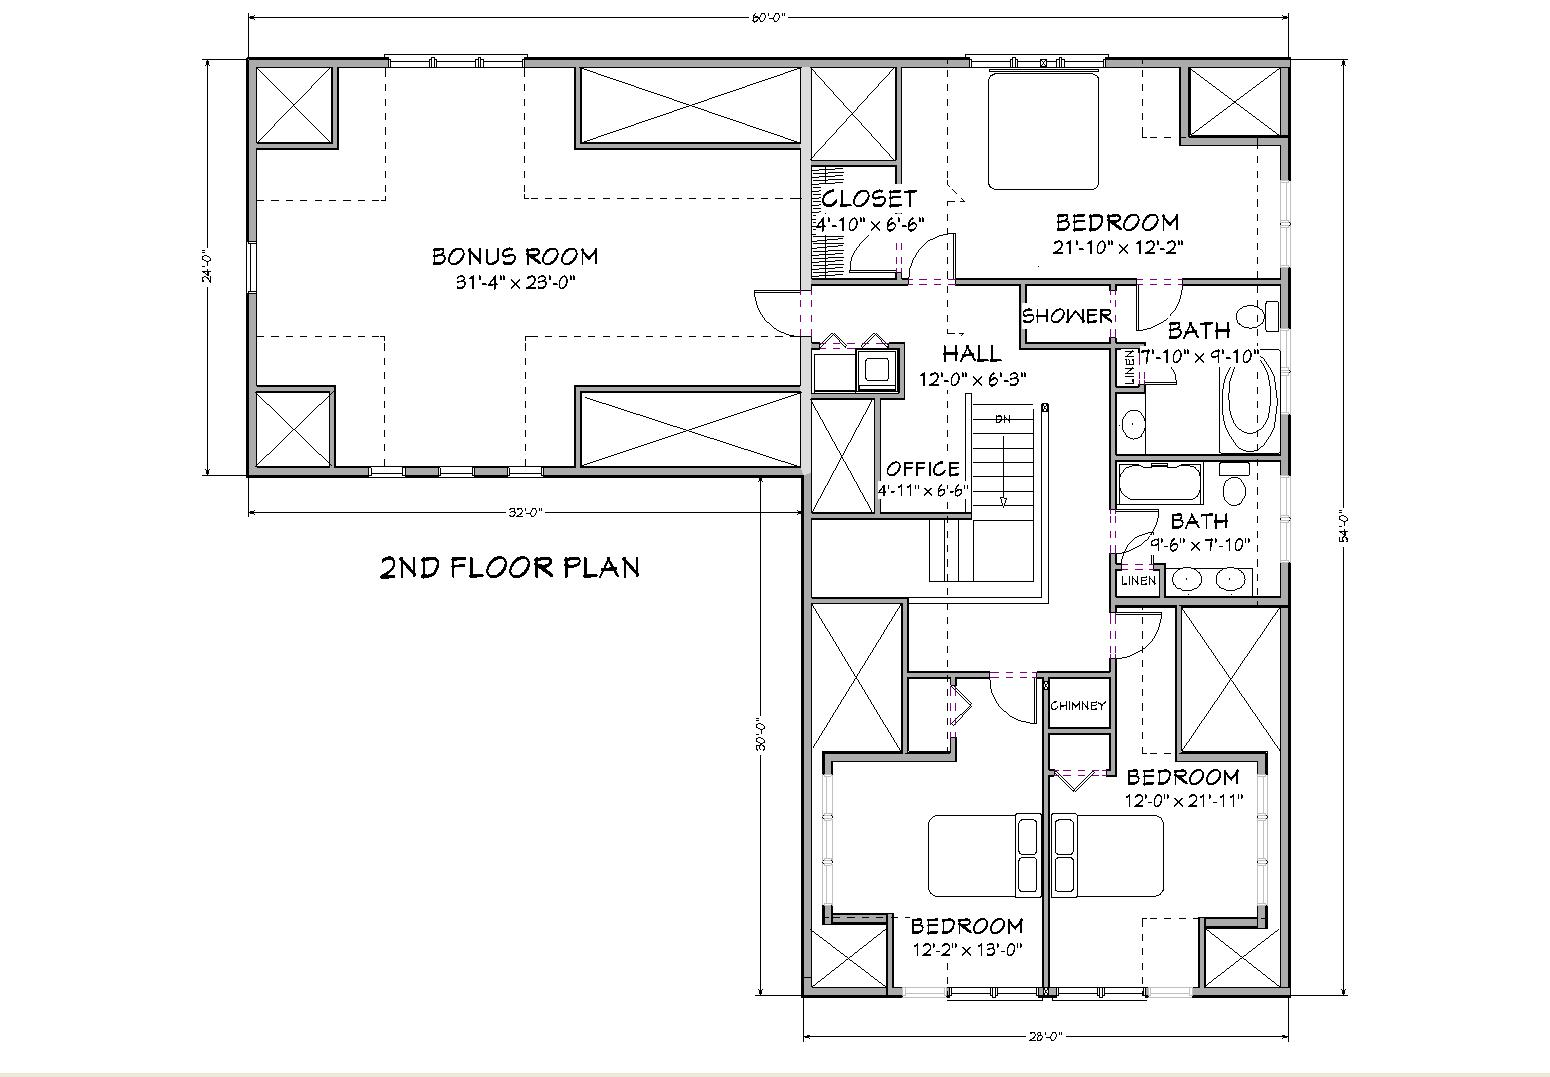 3000 Square Foot Home Plans Floor Plans